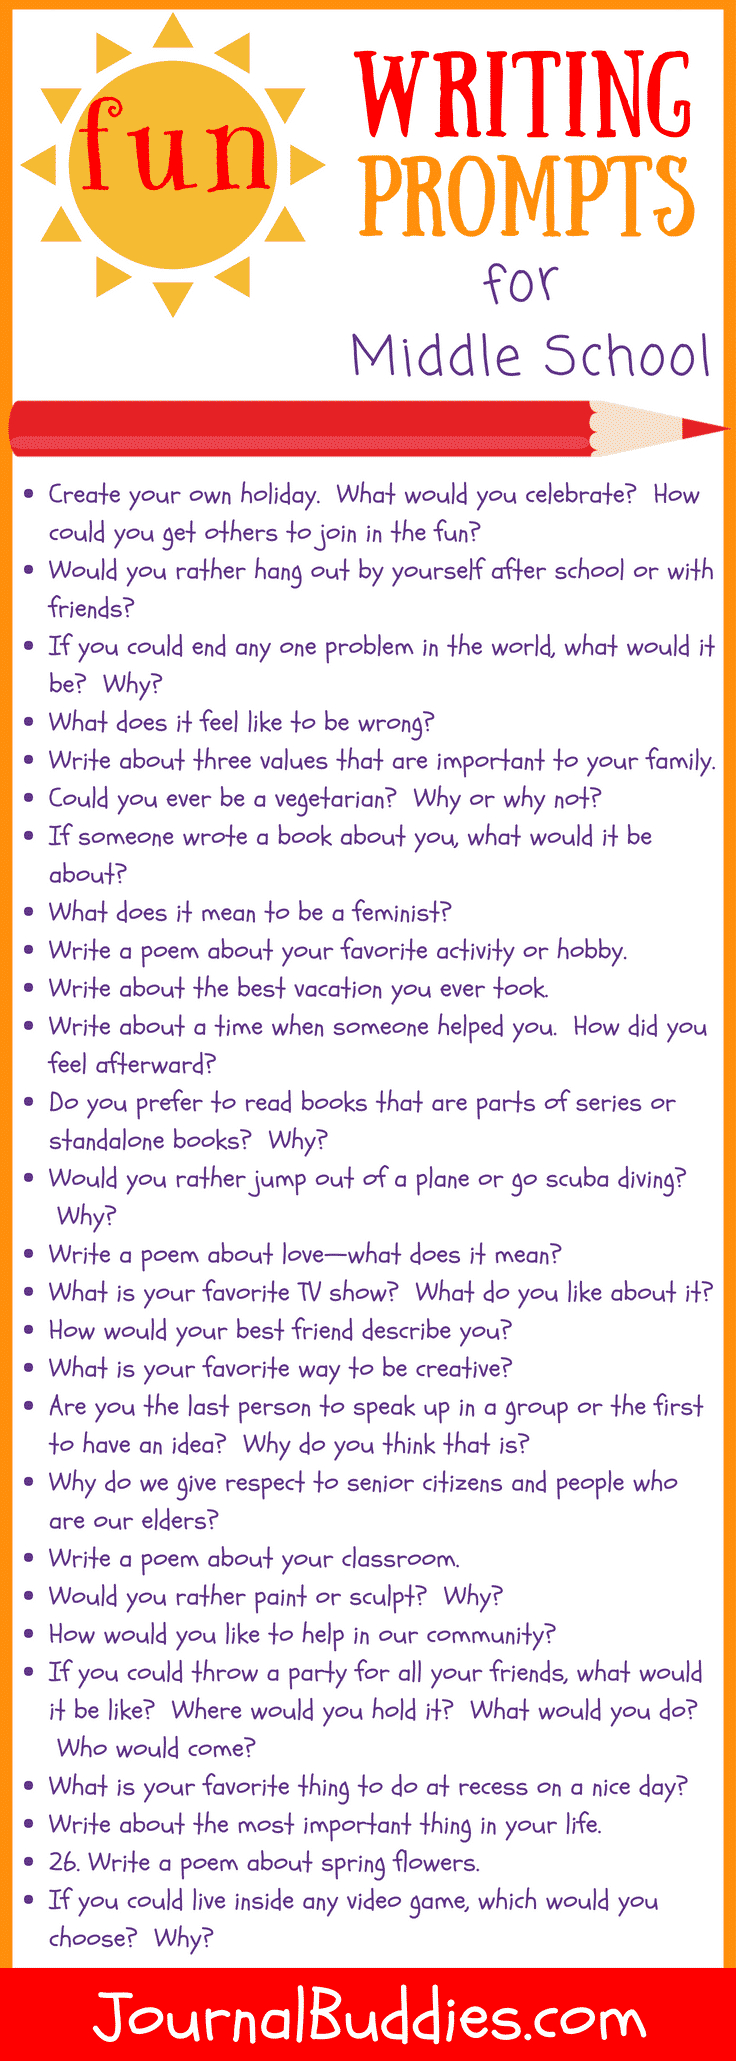 31 Fun Writing Prompts For Middle School ⋆ Journalbuddies - Free Printable Writing Prompts For Middle School